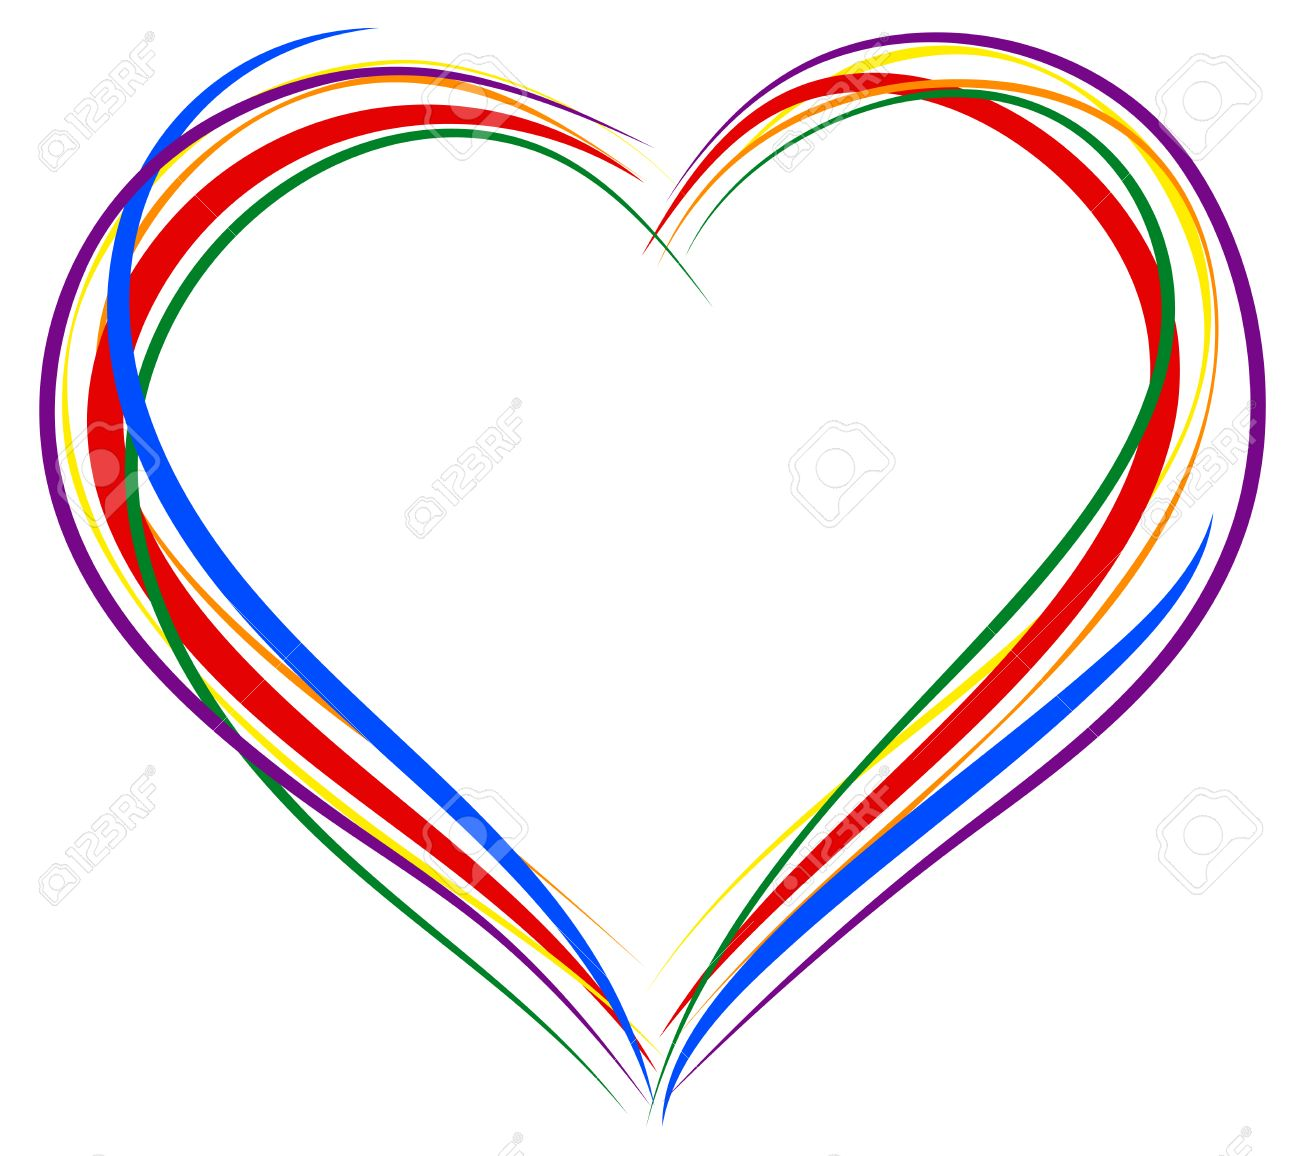 lgbt heart symbol sign of heart outline rainbow heart for greeting rh 123rf com outlined heart symbol type heart outline symbol